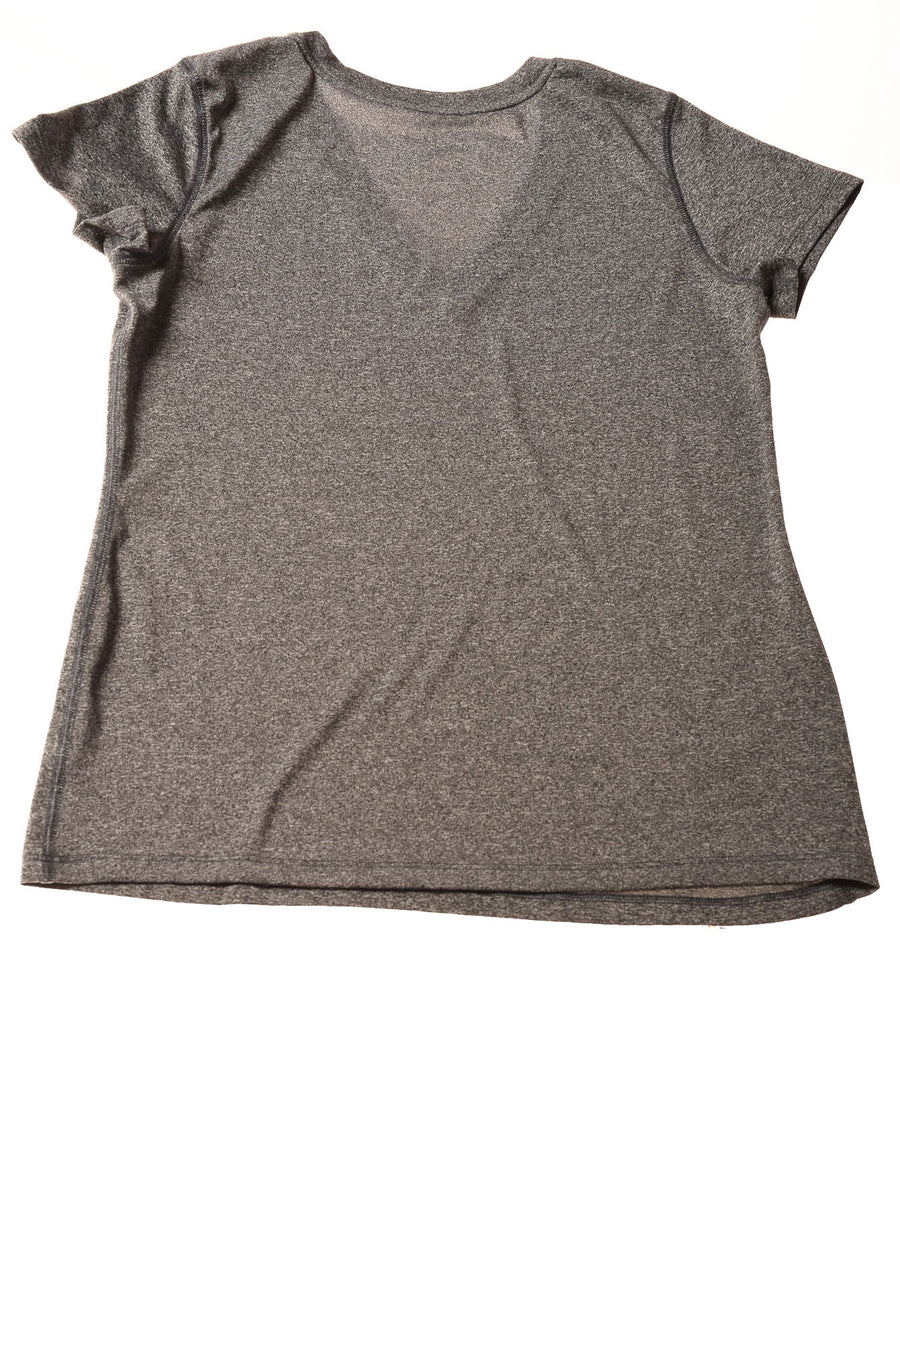 Women's Top By Champion